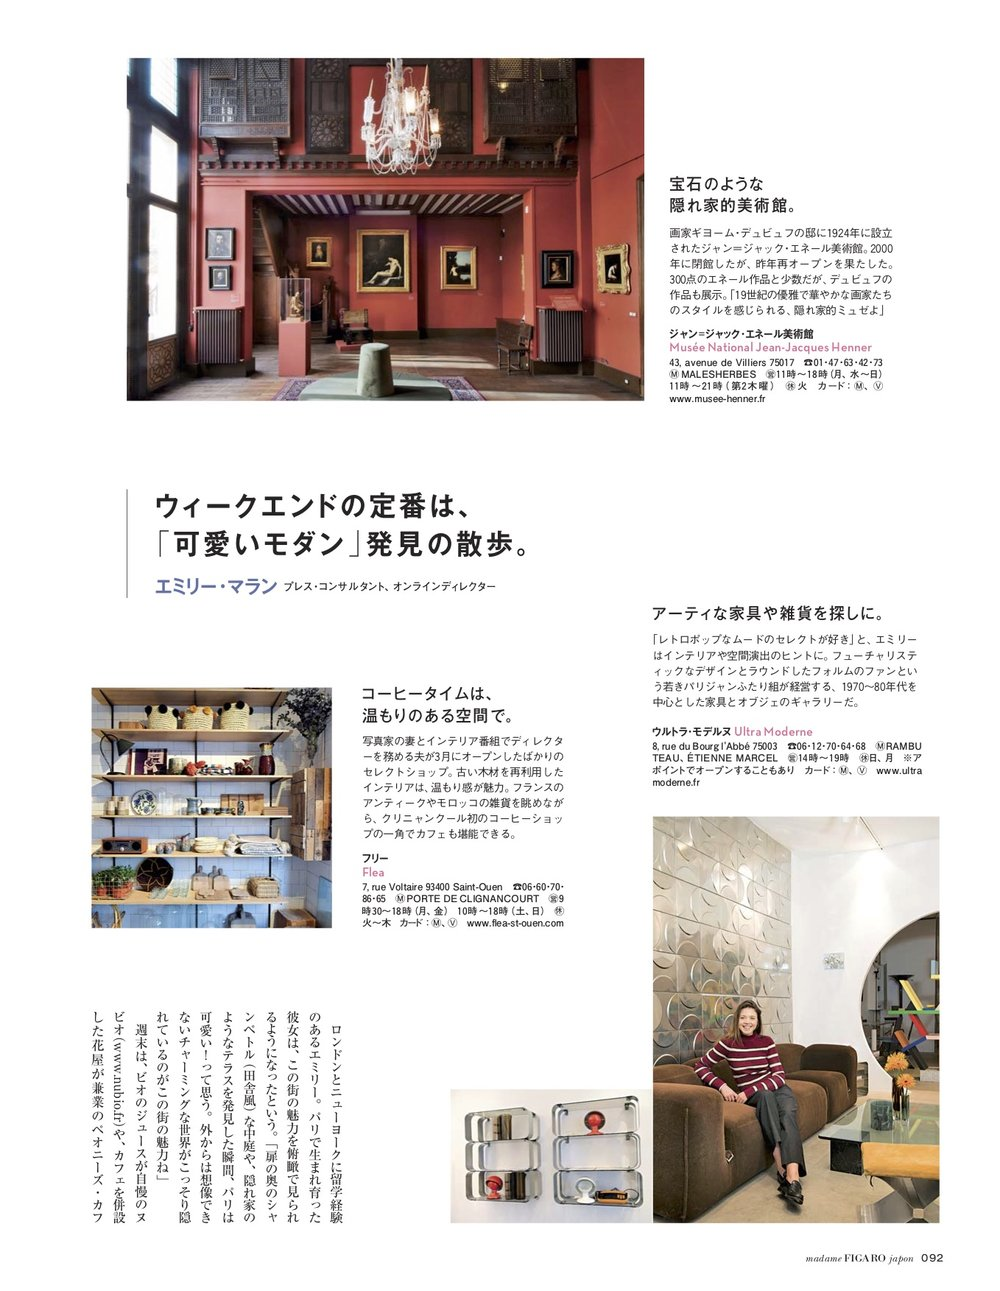 FIGARO MADAME JAPON article.jpg